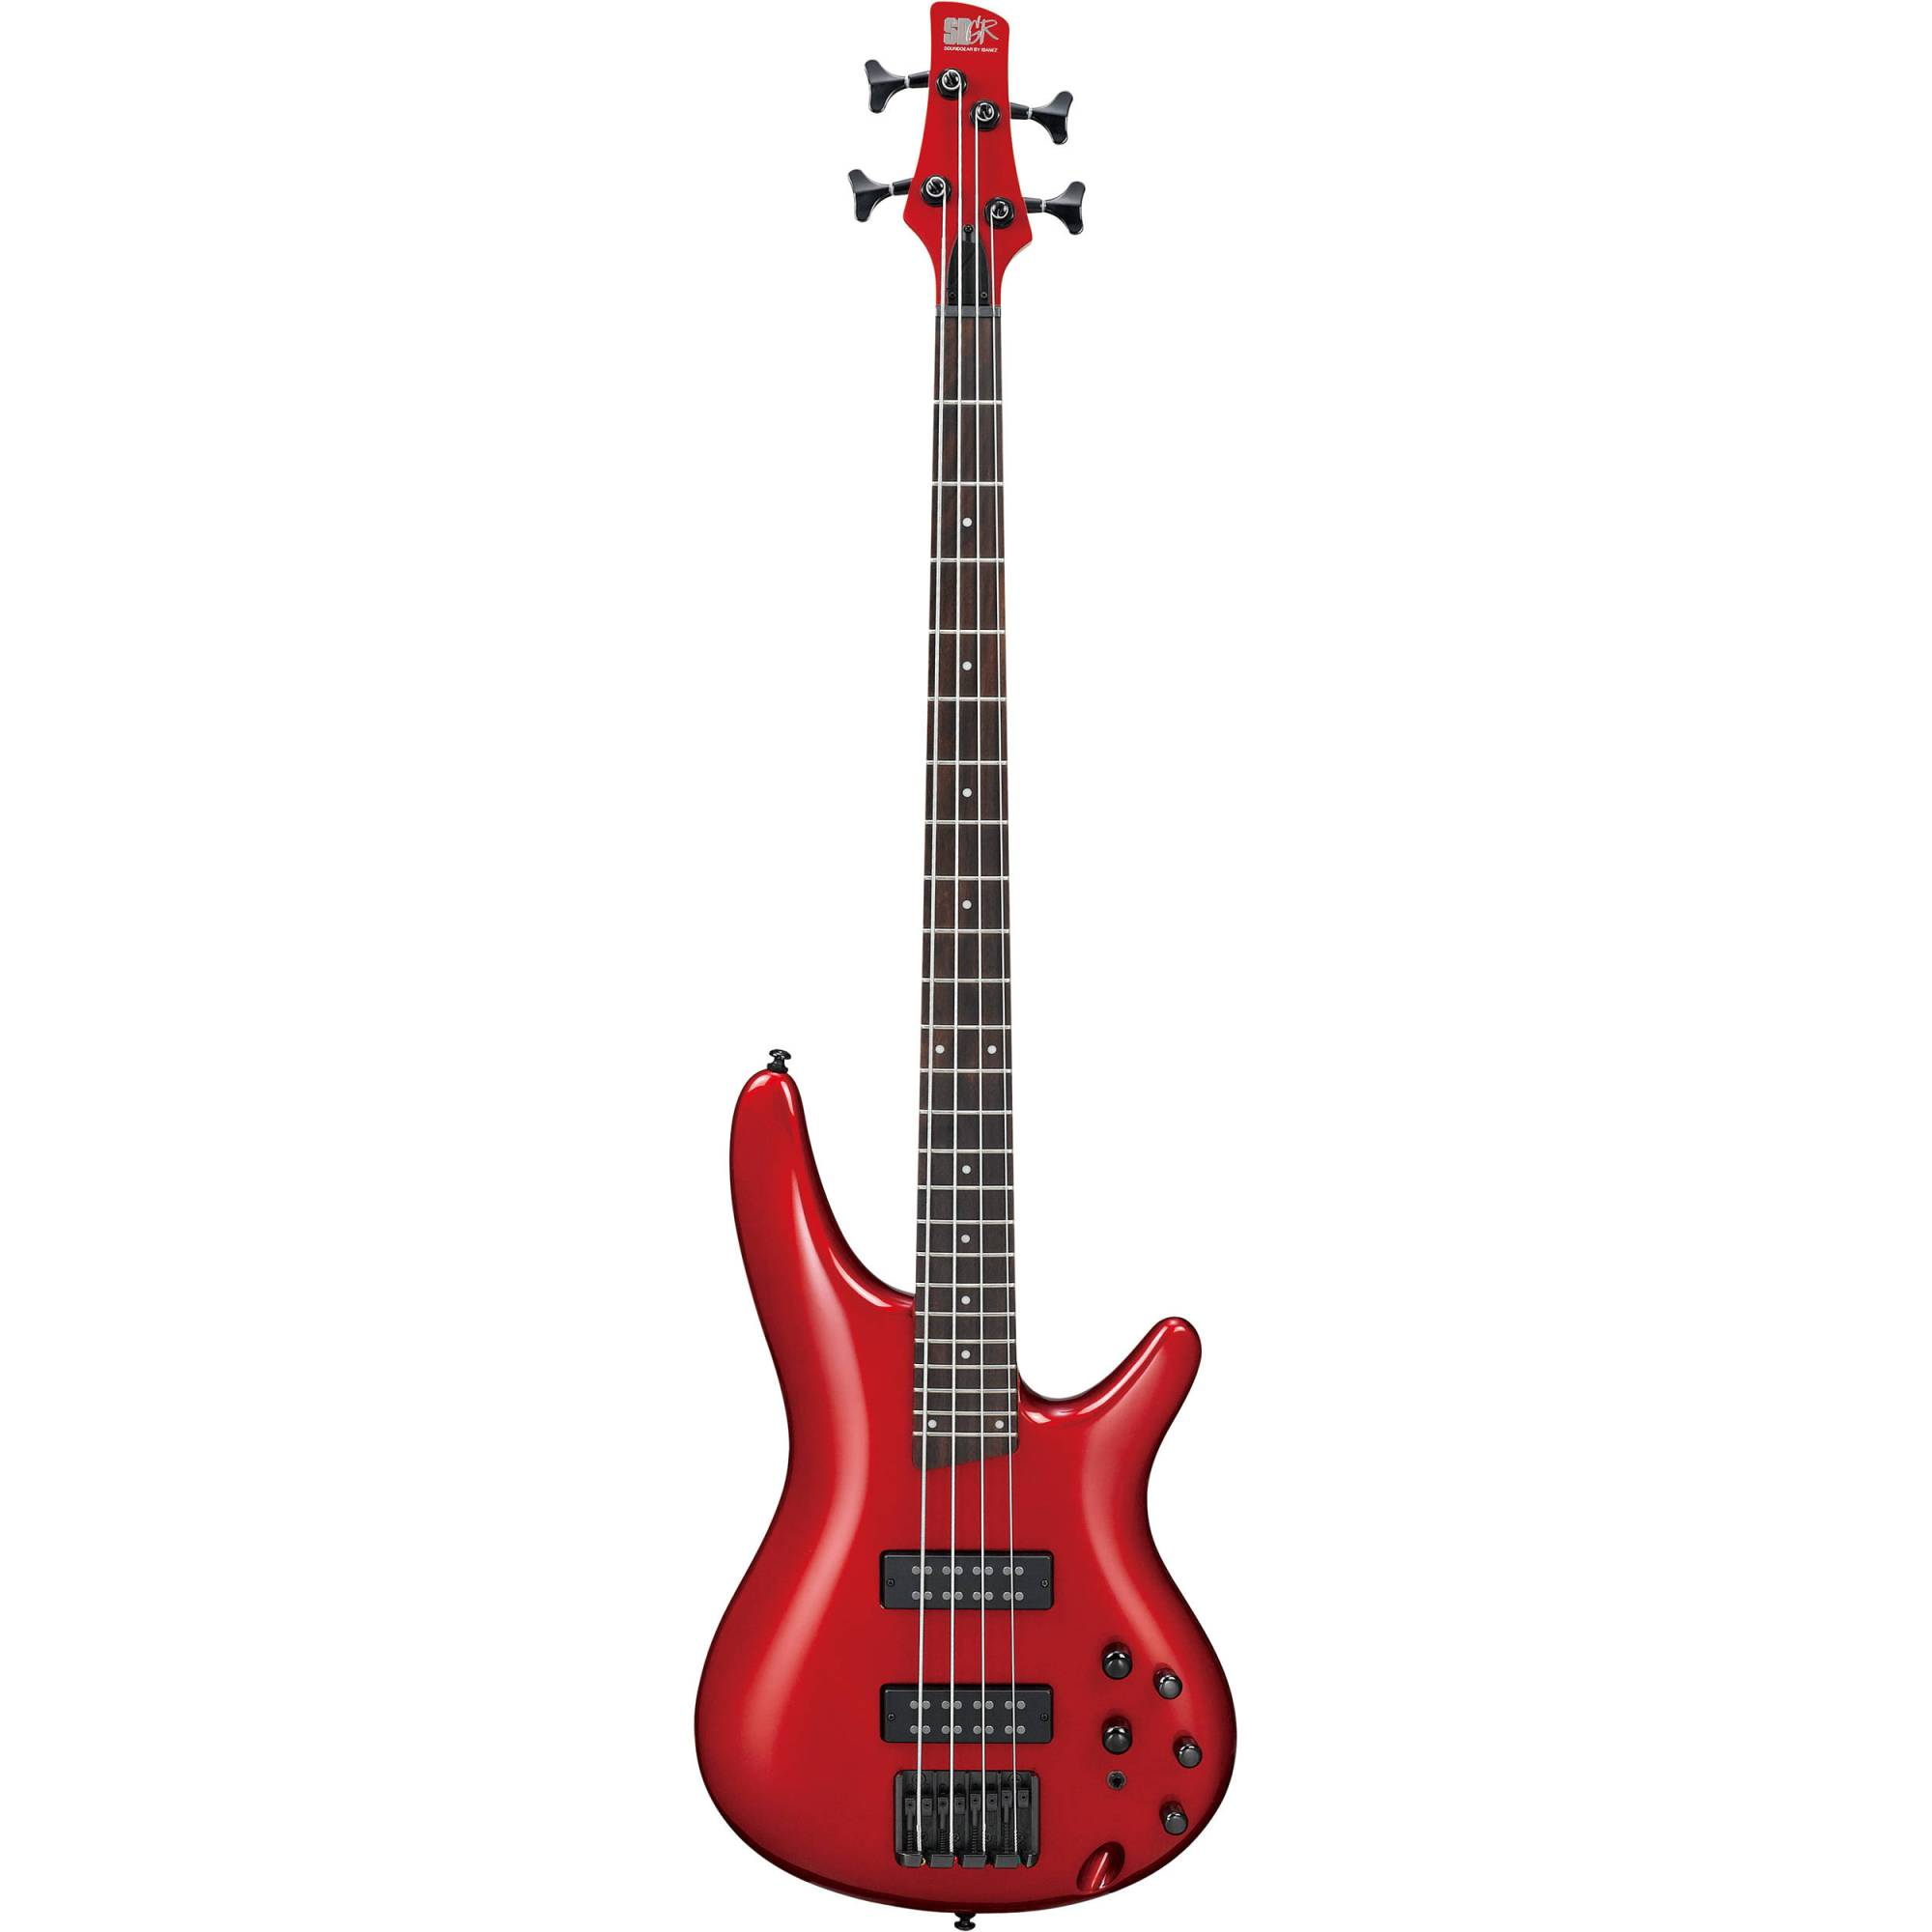 hight resolution of  service phat ii eq ultra wide tonal range you ll see why ranks most played time controls completely functional ibanez bass setup ibanez sr manual